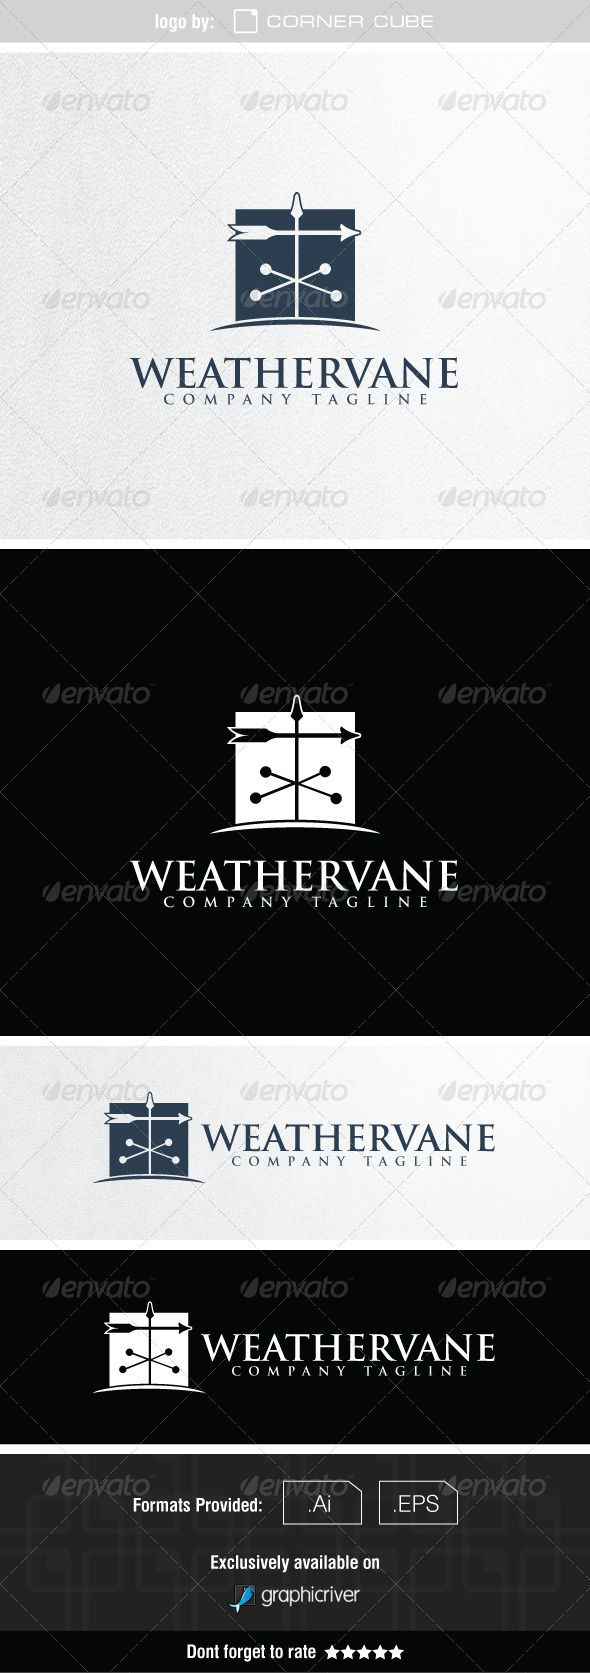 GraphicRiver Weathervane Logo 7550492